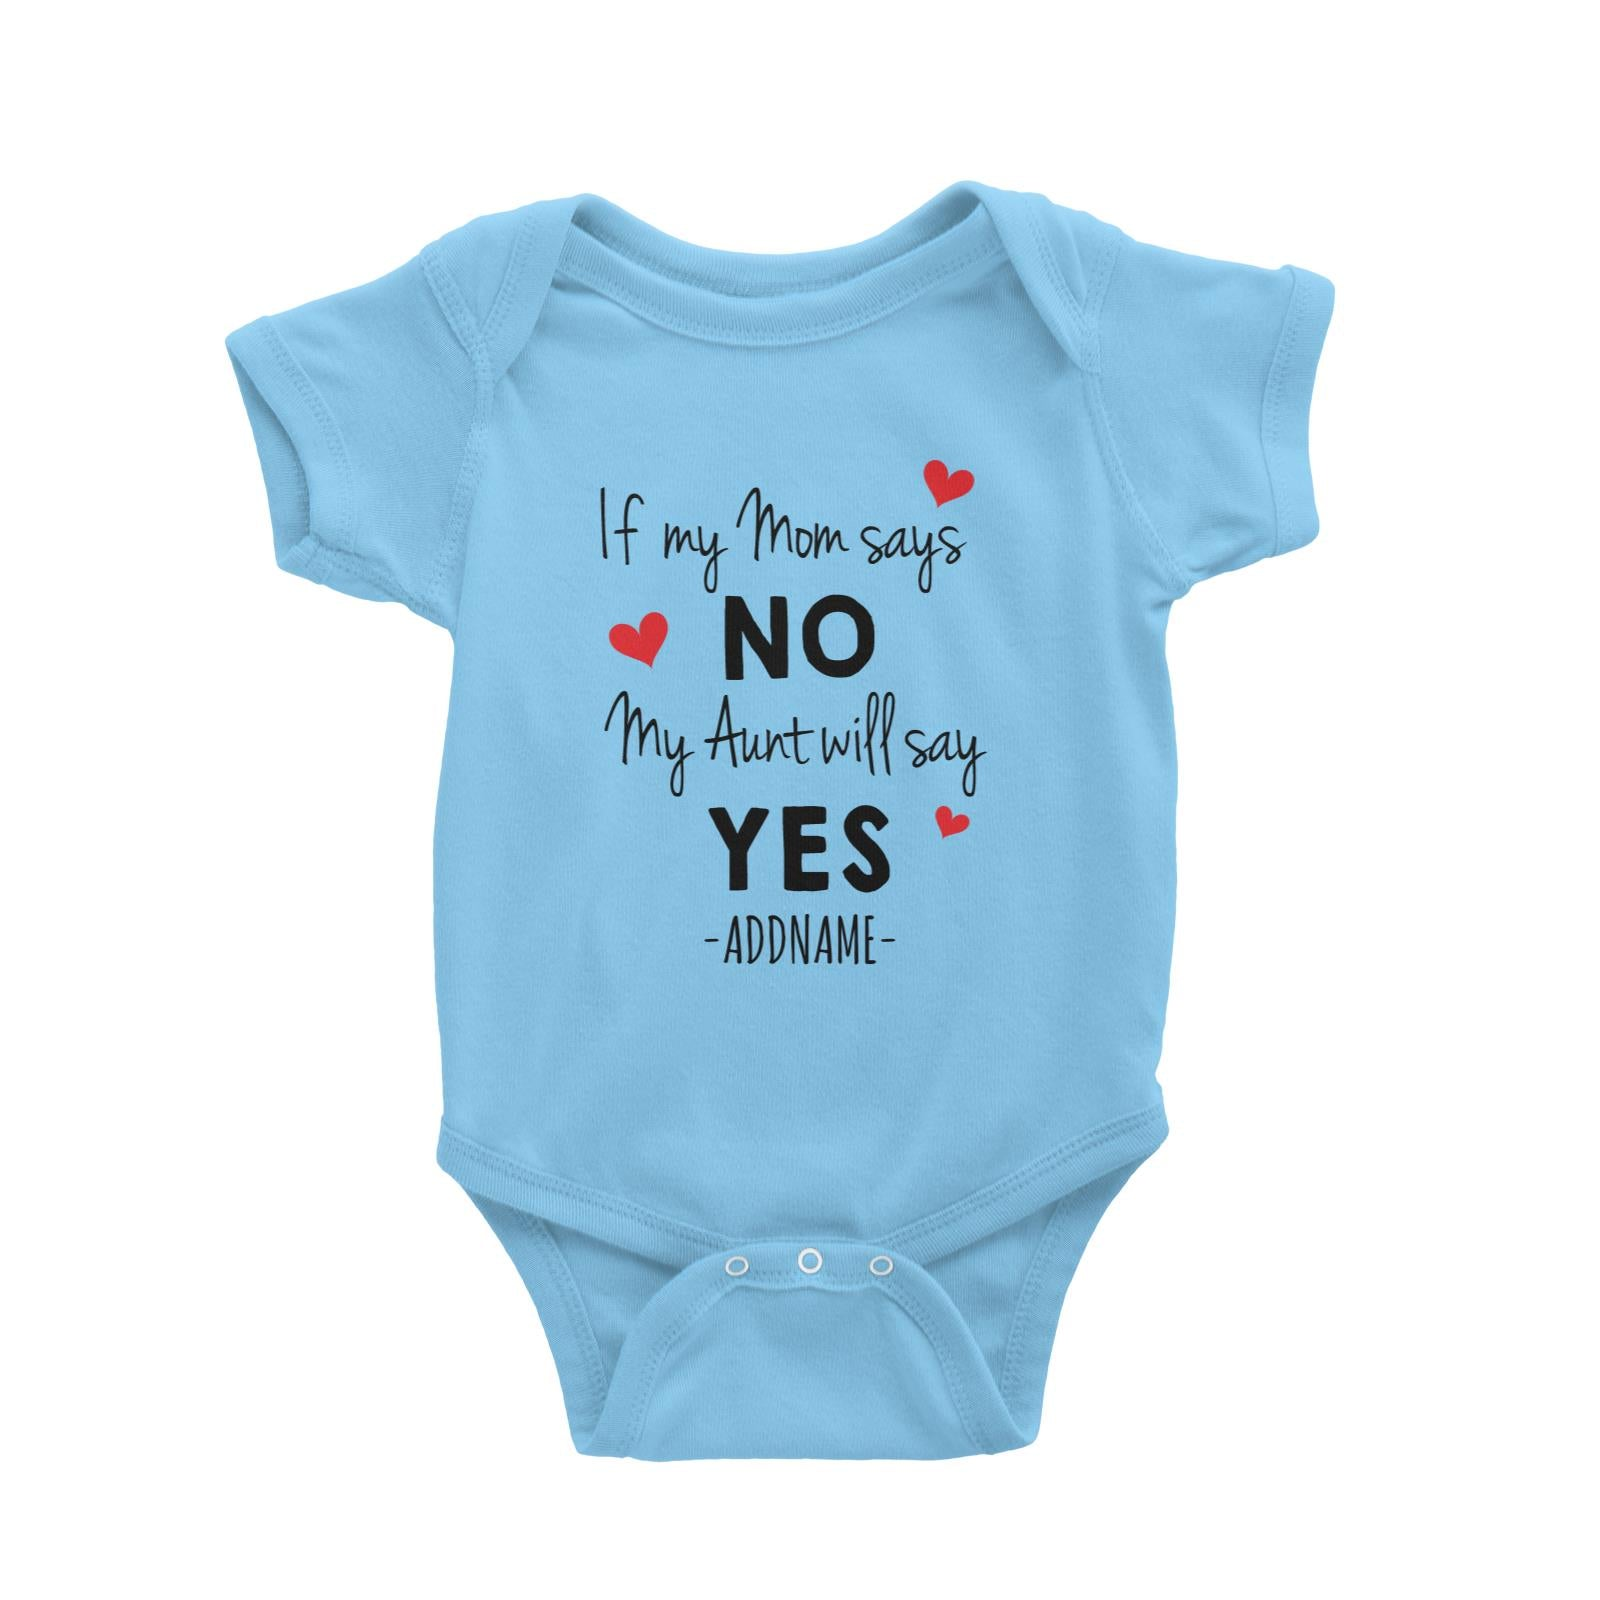 If My Mom Says No, My Aunt Will Say Yes Addname Baby Romper Personalizable Designs Basic Newborn